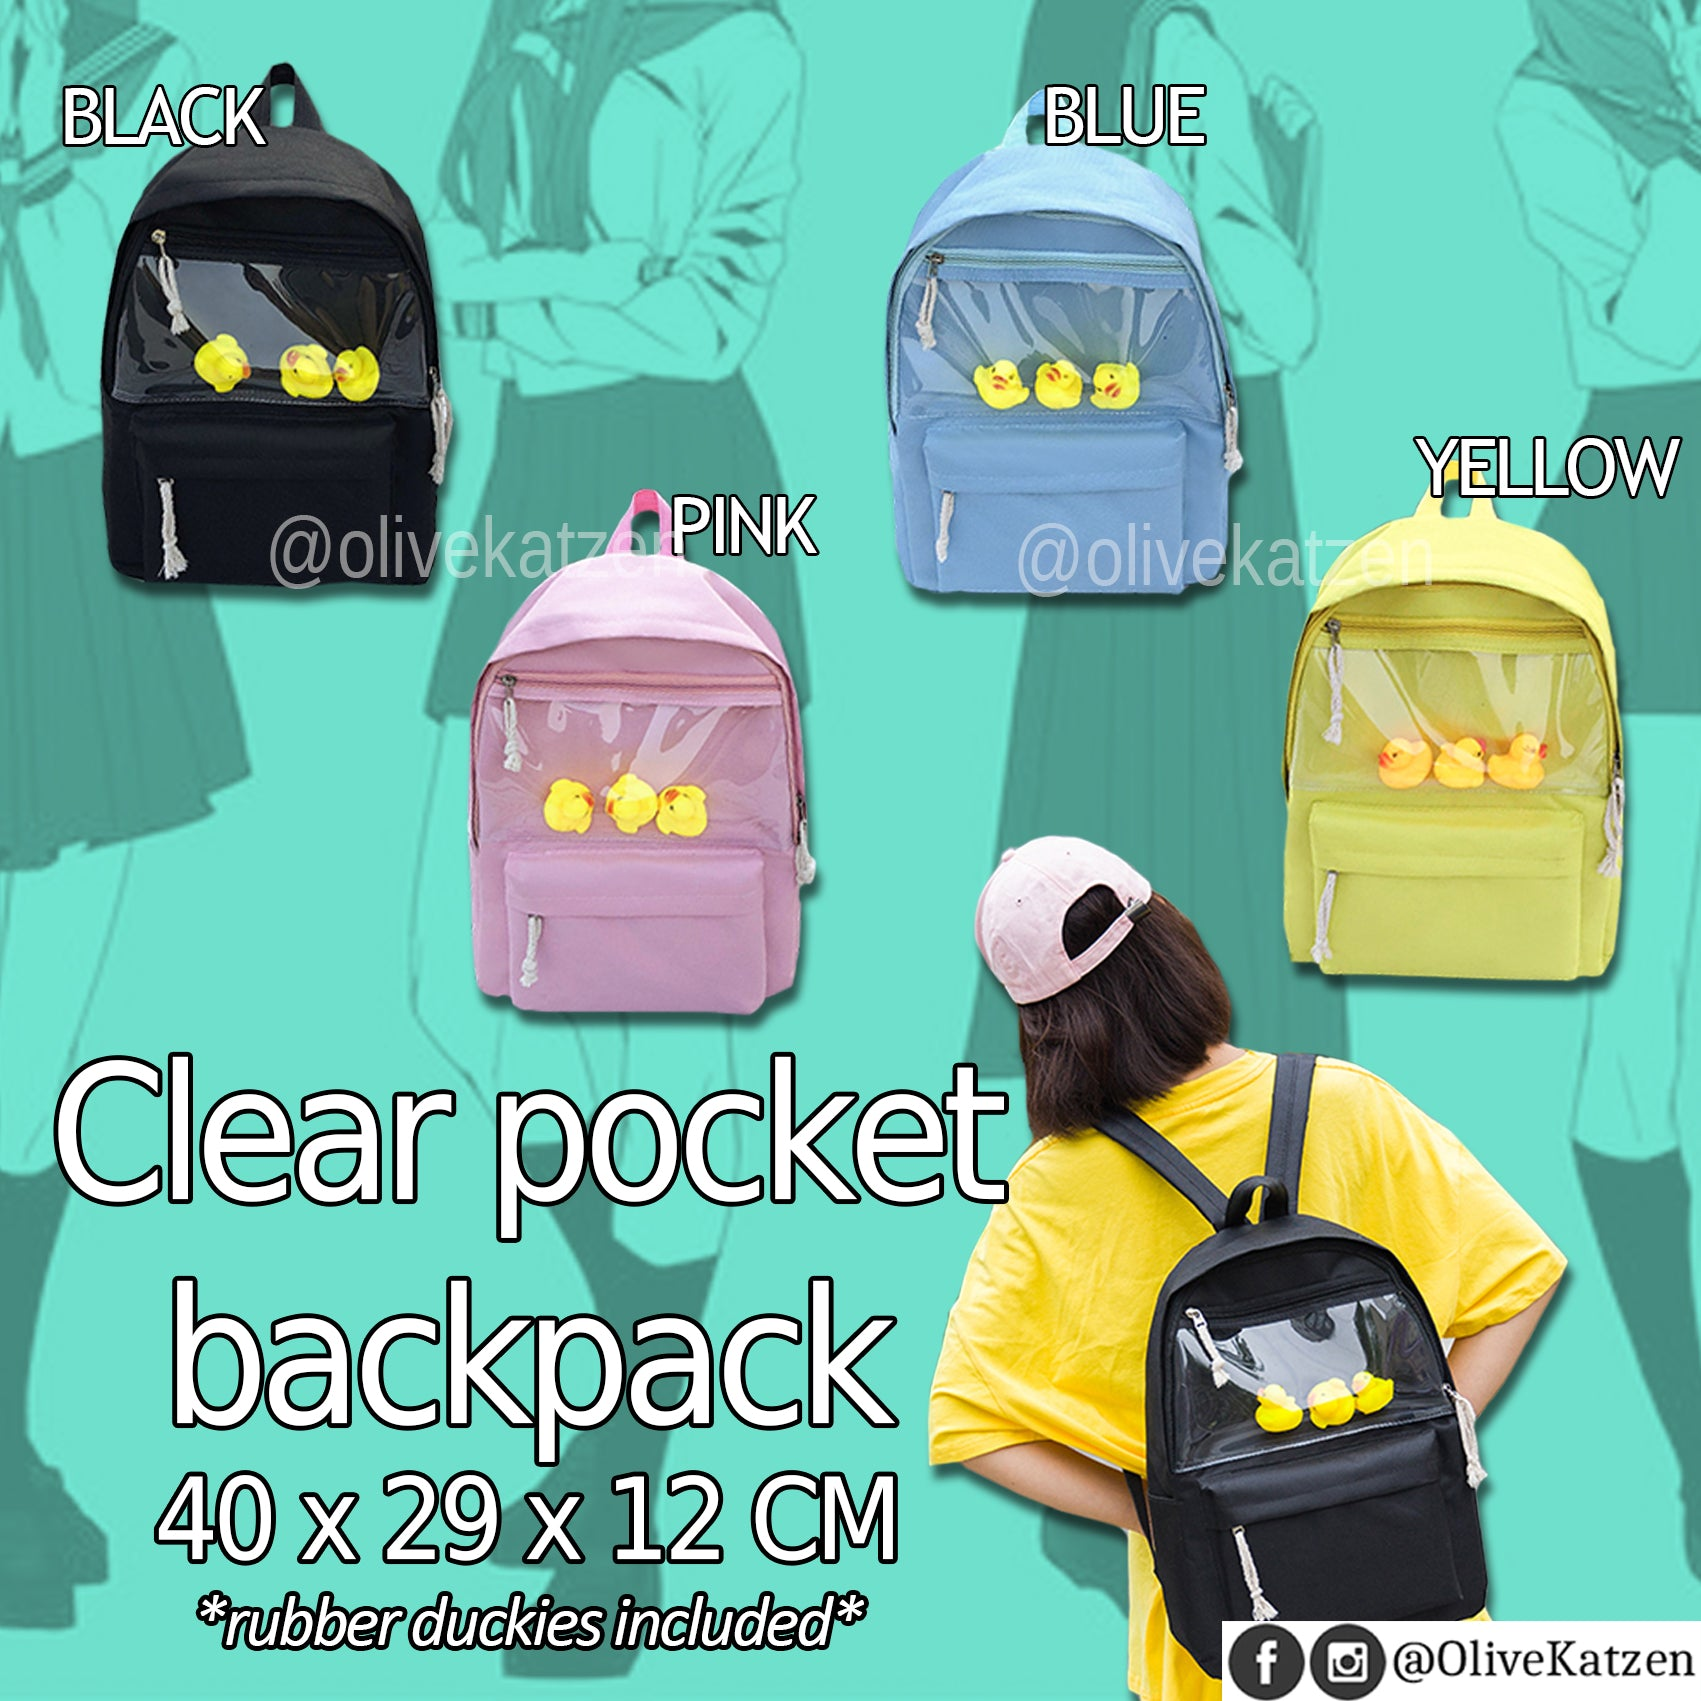 "Clear Pocket Backpack ""Ita Bag"" (痛バッグ)"